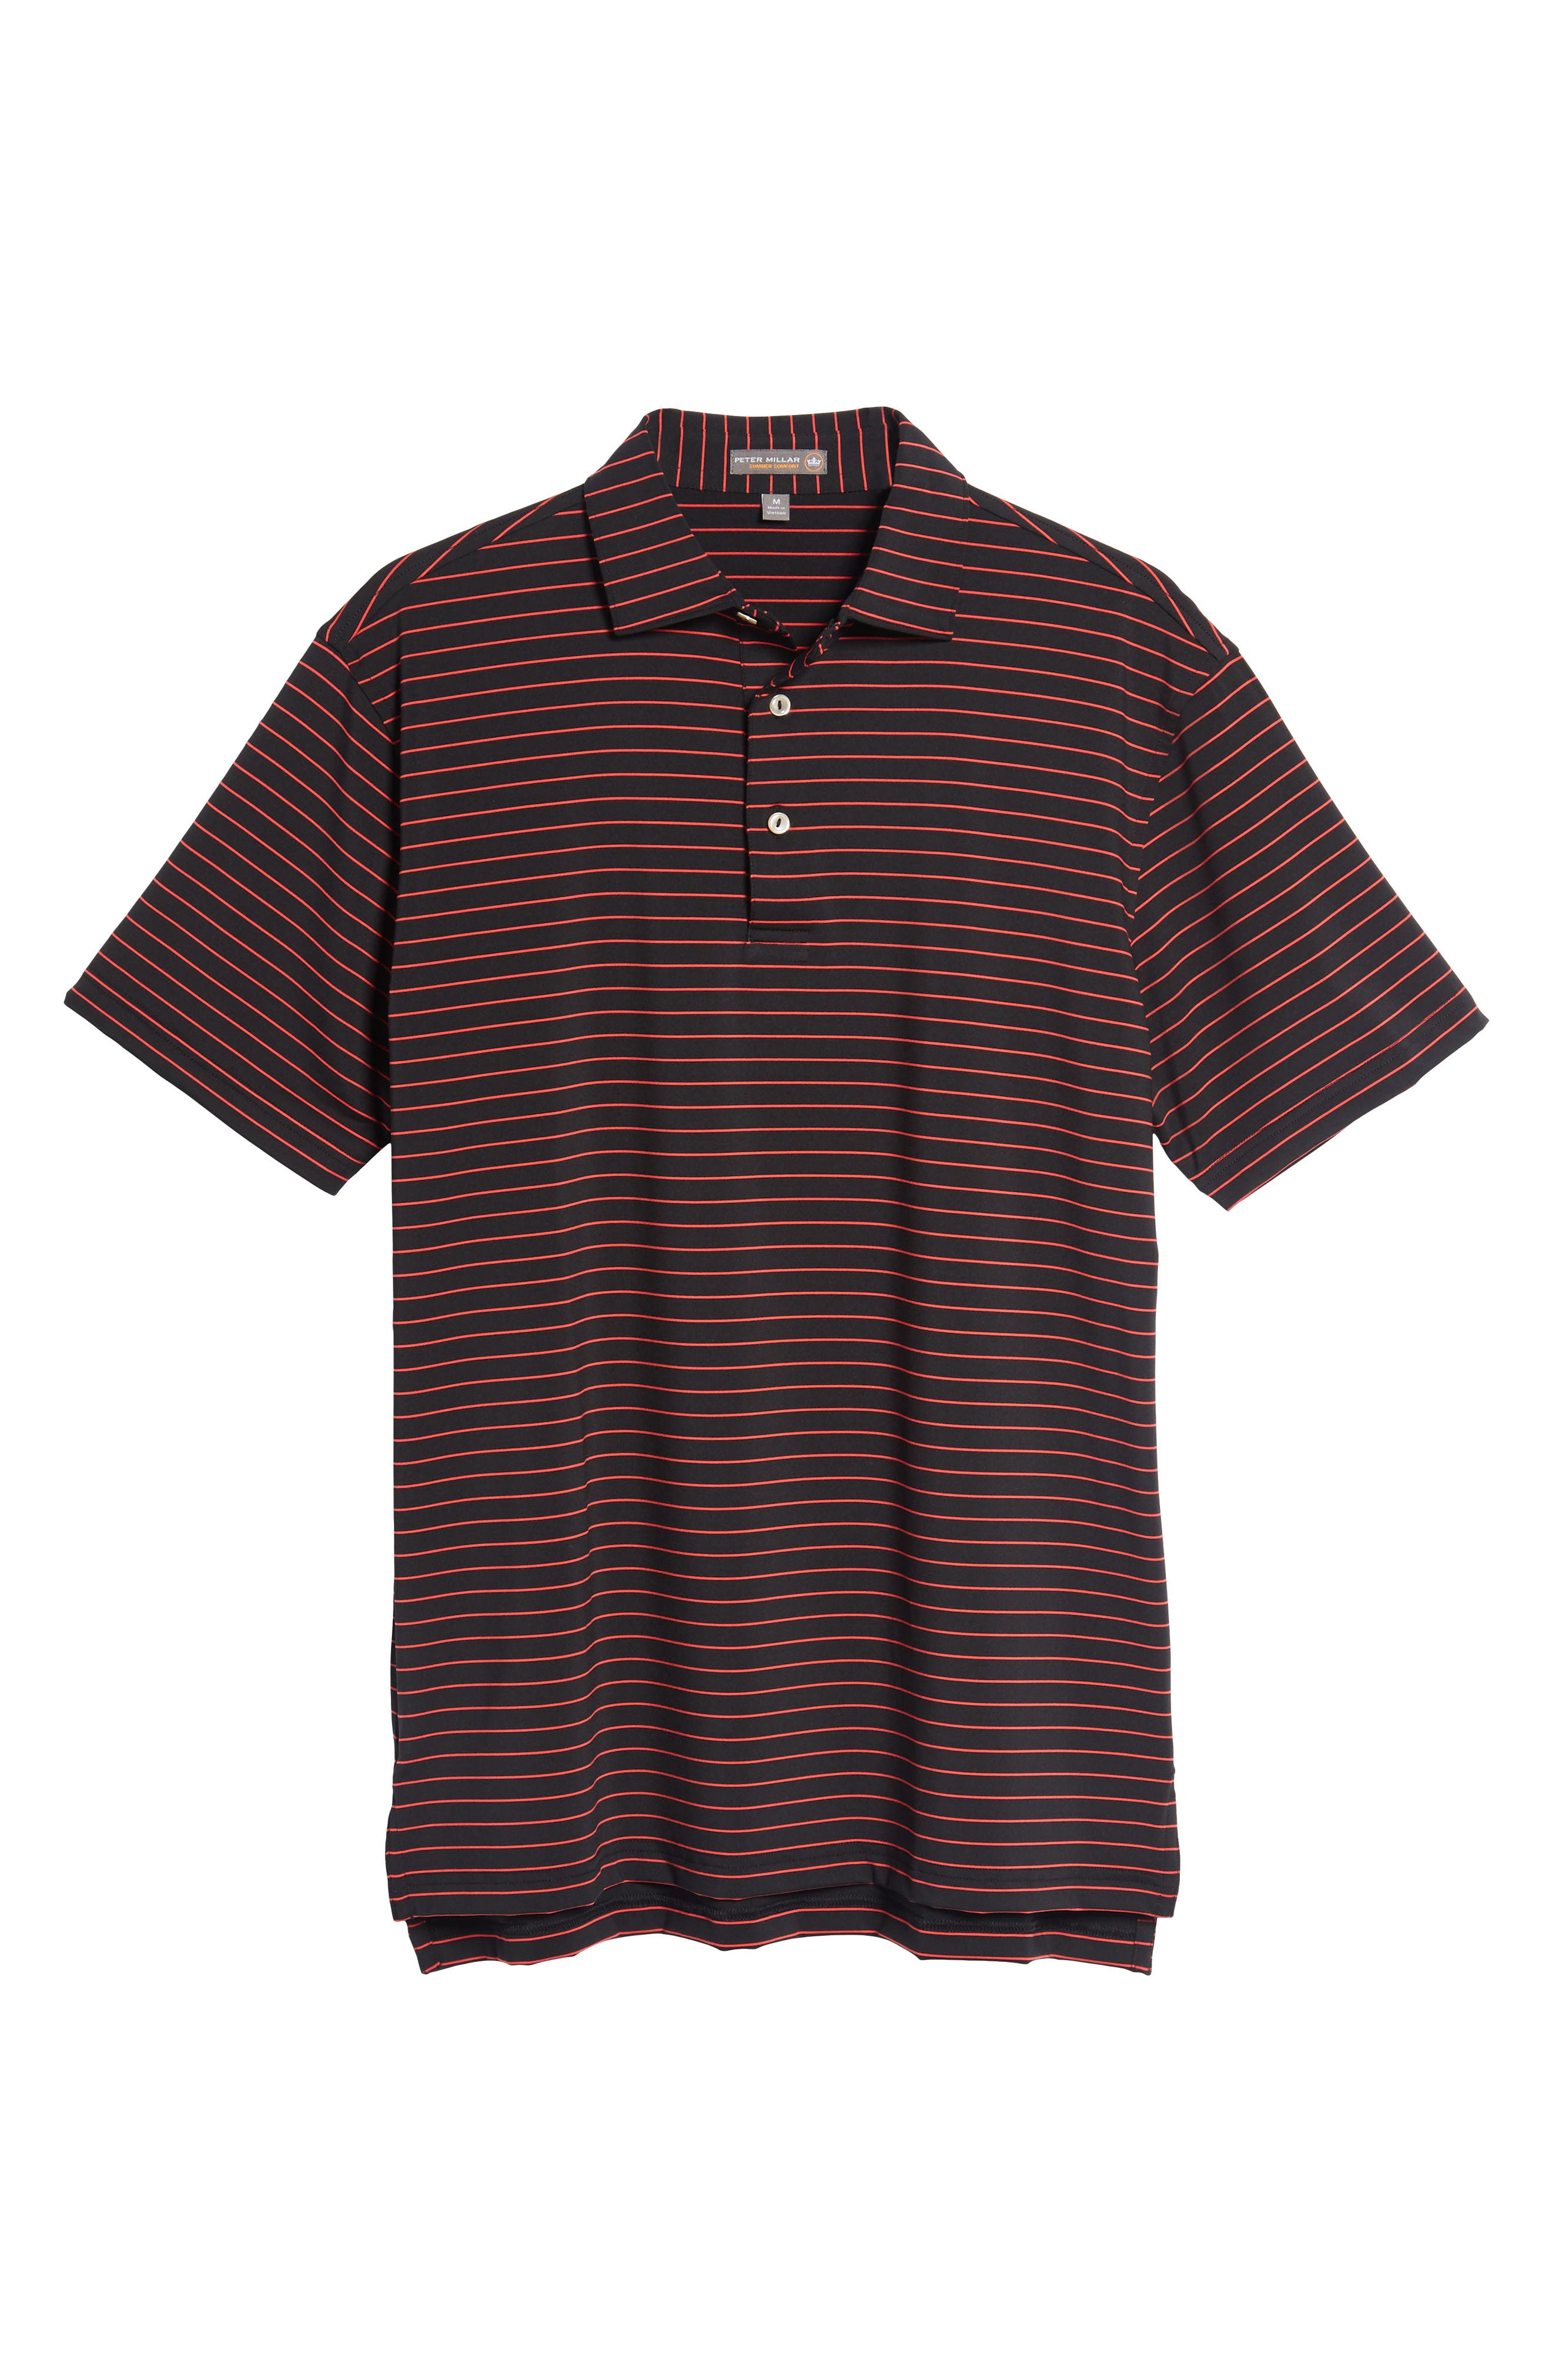 Halifax Pinstripe Stretch Jersey Polo,                             Alternate thumbnail 6, color,                             001